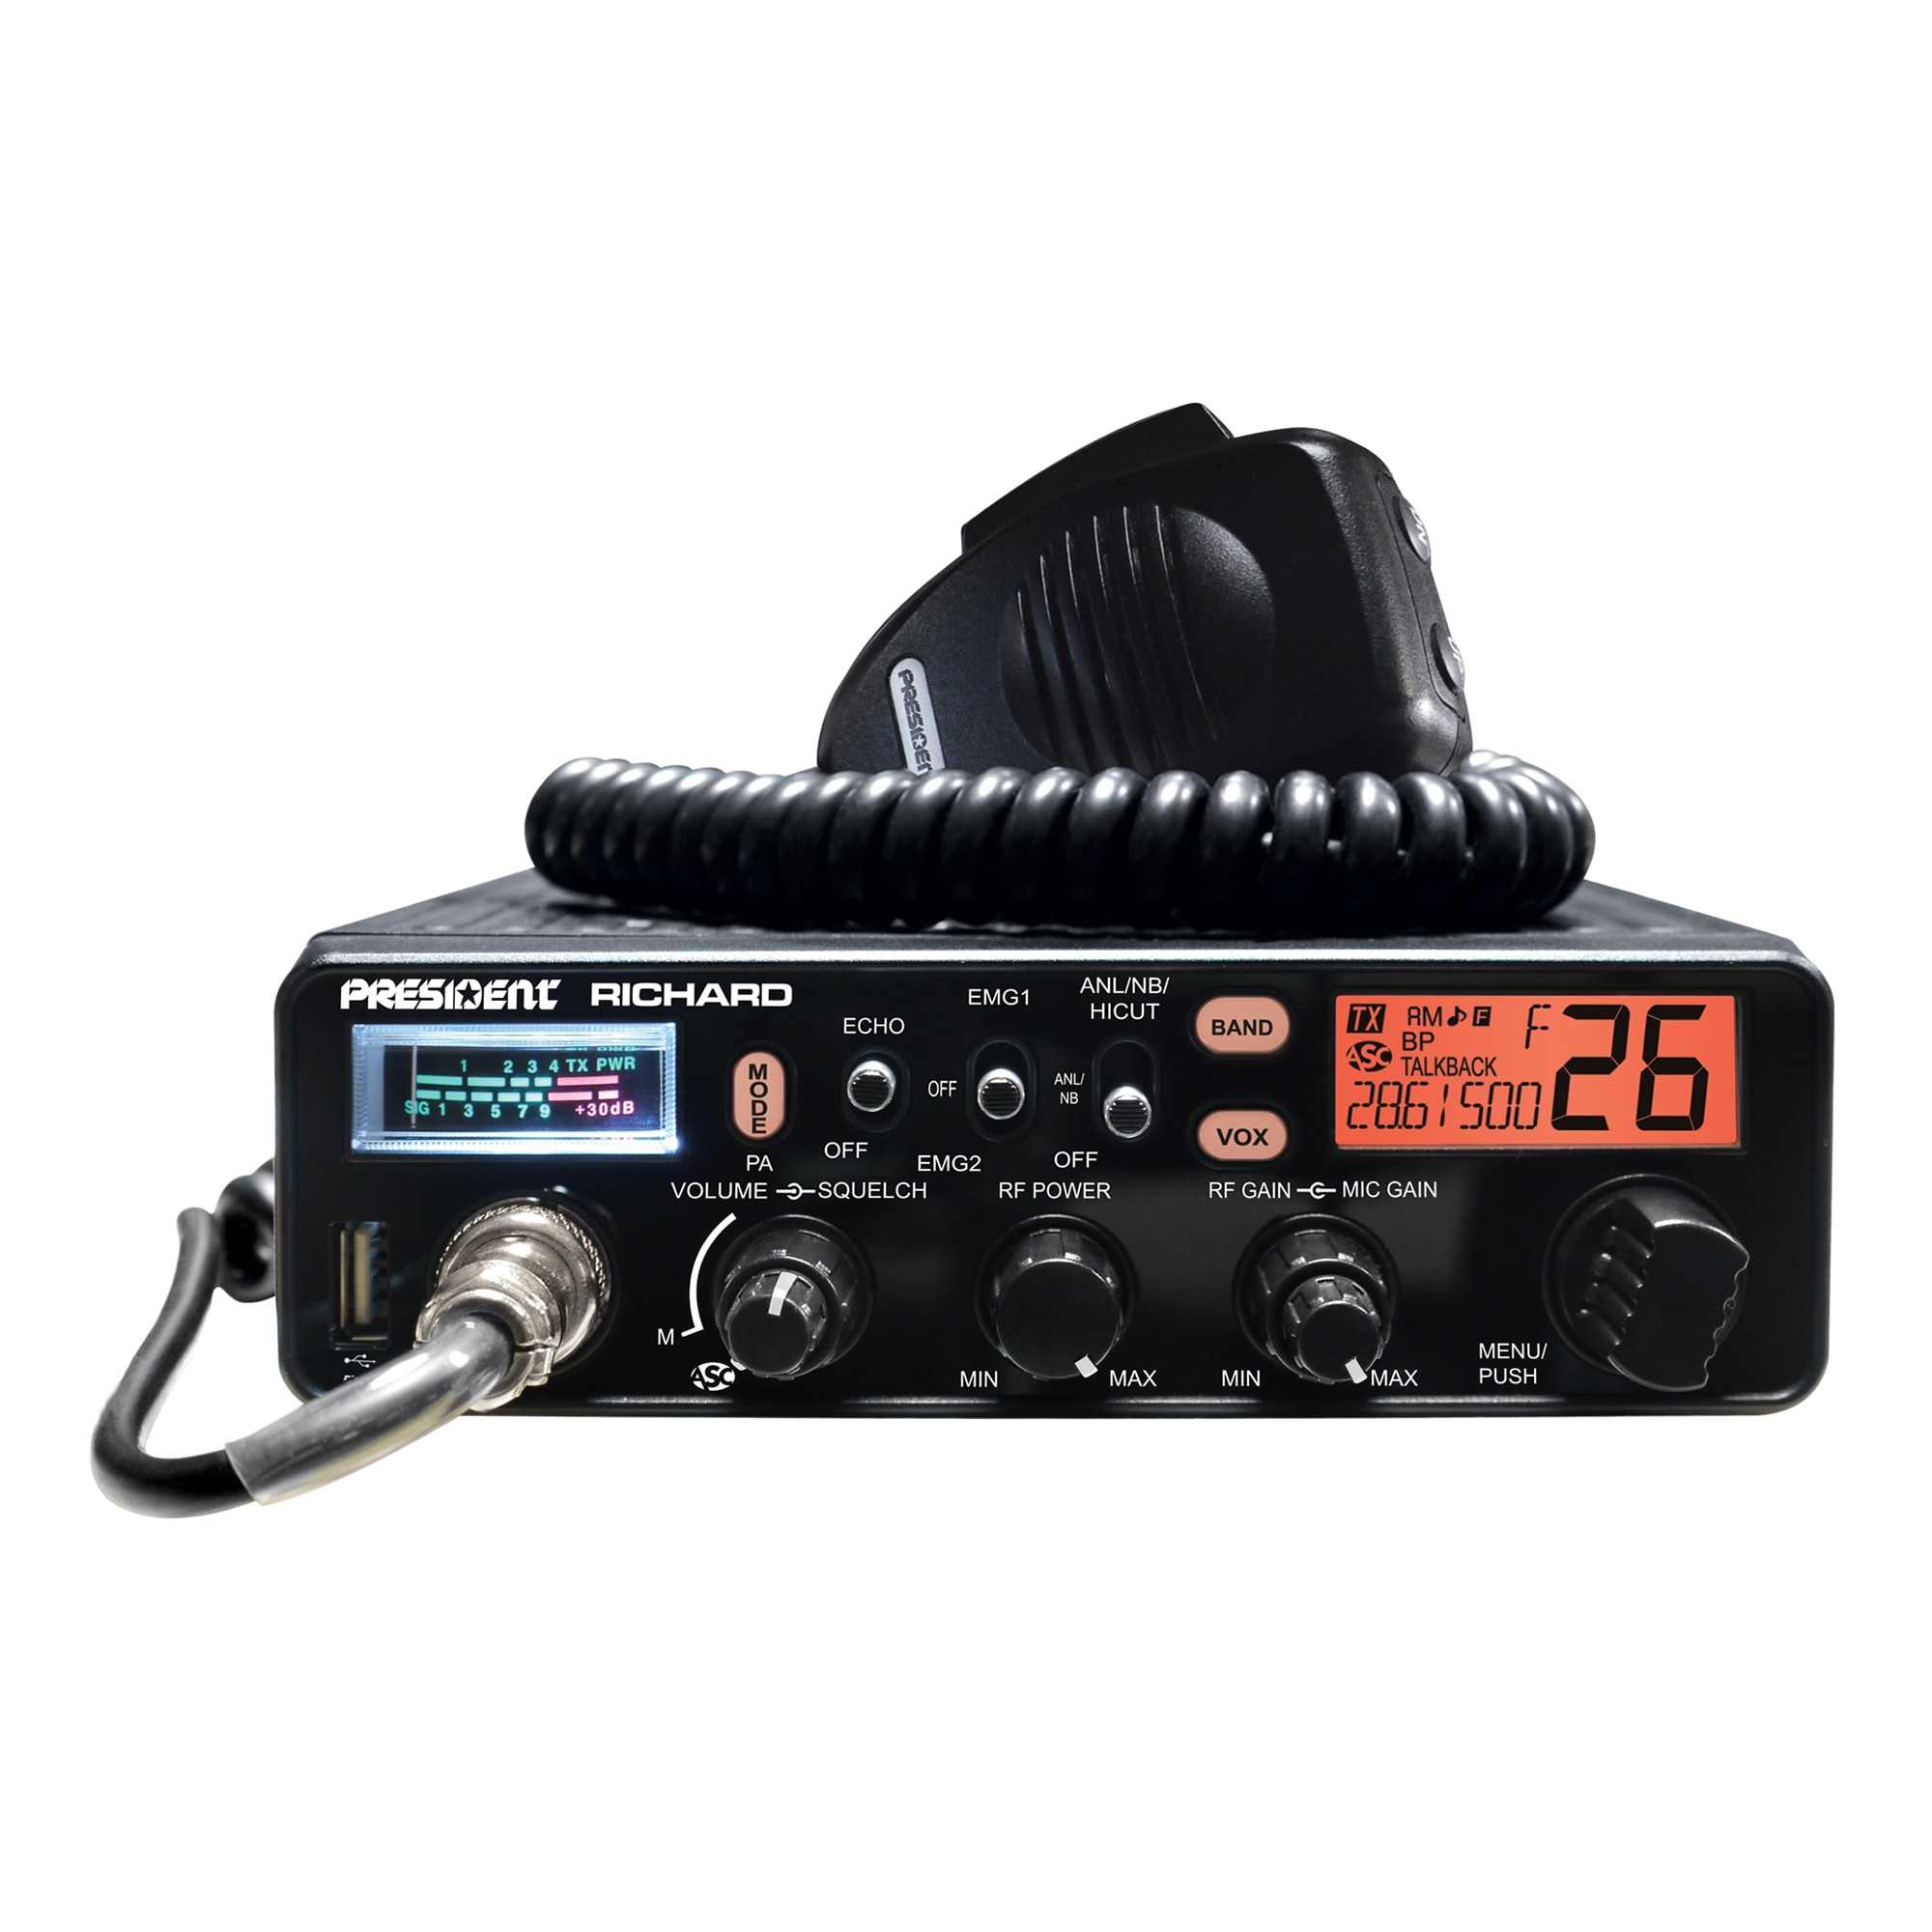 Fotografie Statie radio amatori President Richard ASC 10/12M, AM-FM, 12V, RF Gain, NB, ANL, Hi-Cut, Echo, Port USB